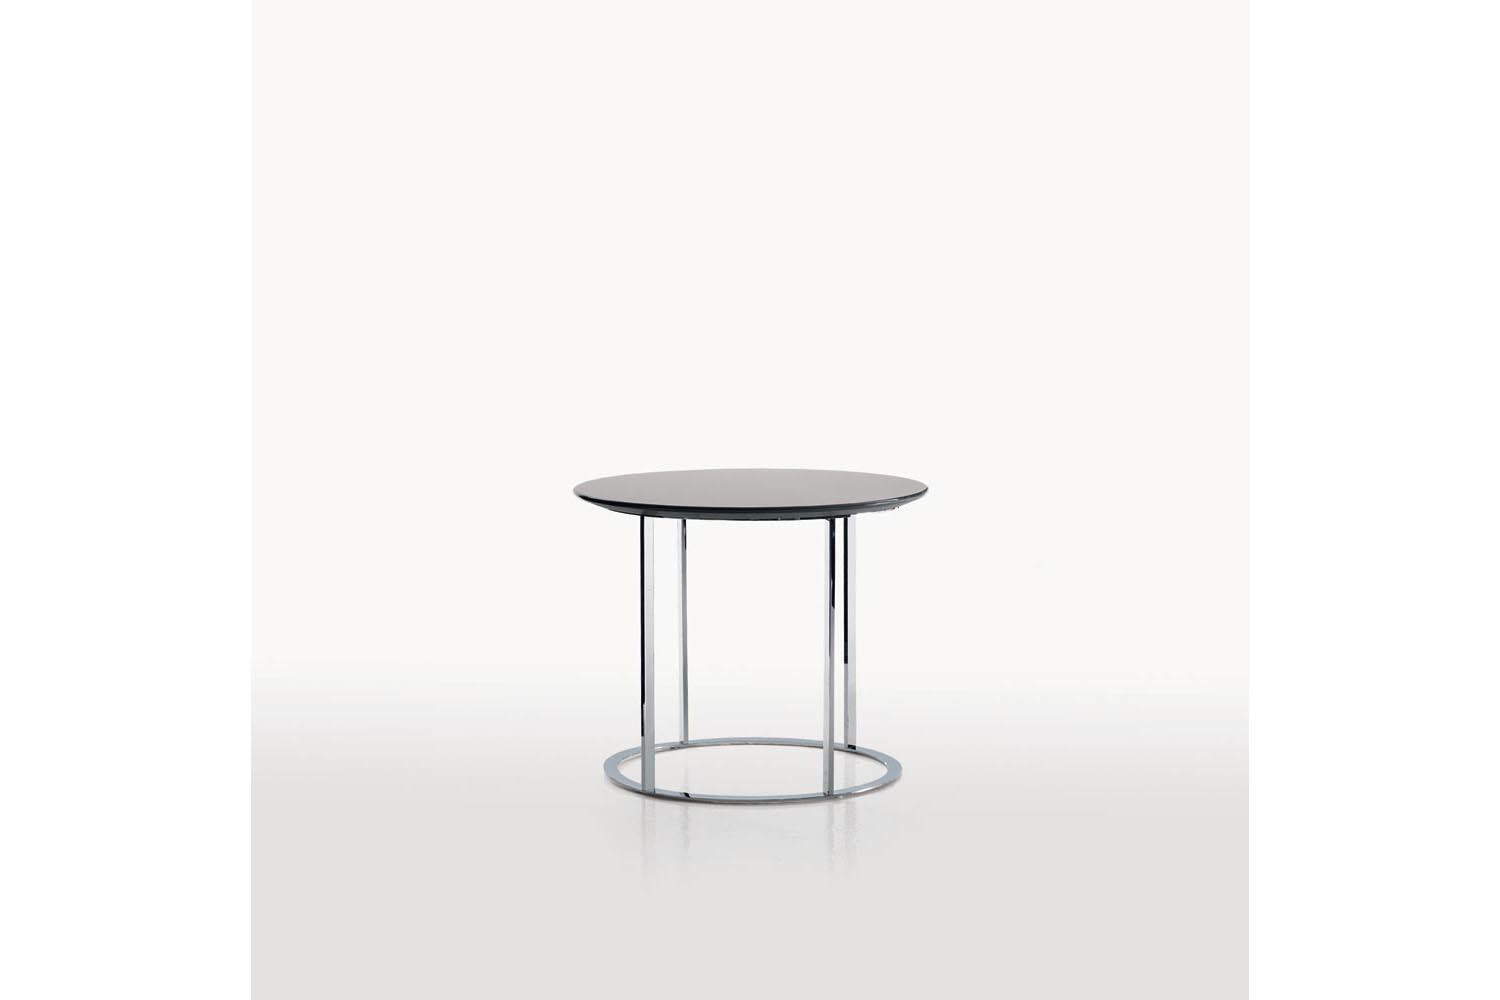 Pathos Side Table by Antonio Citterio for Maxalto